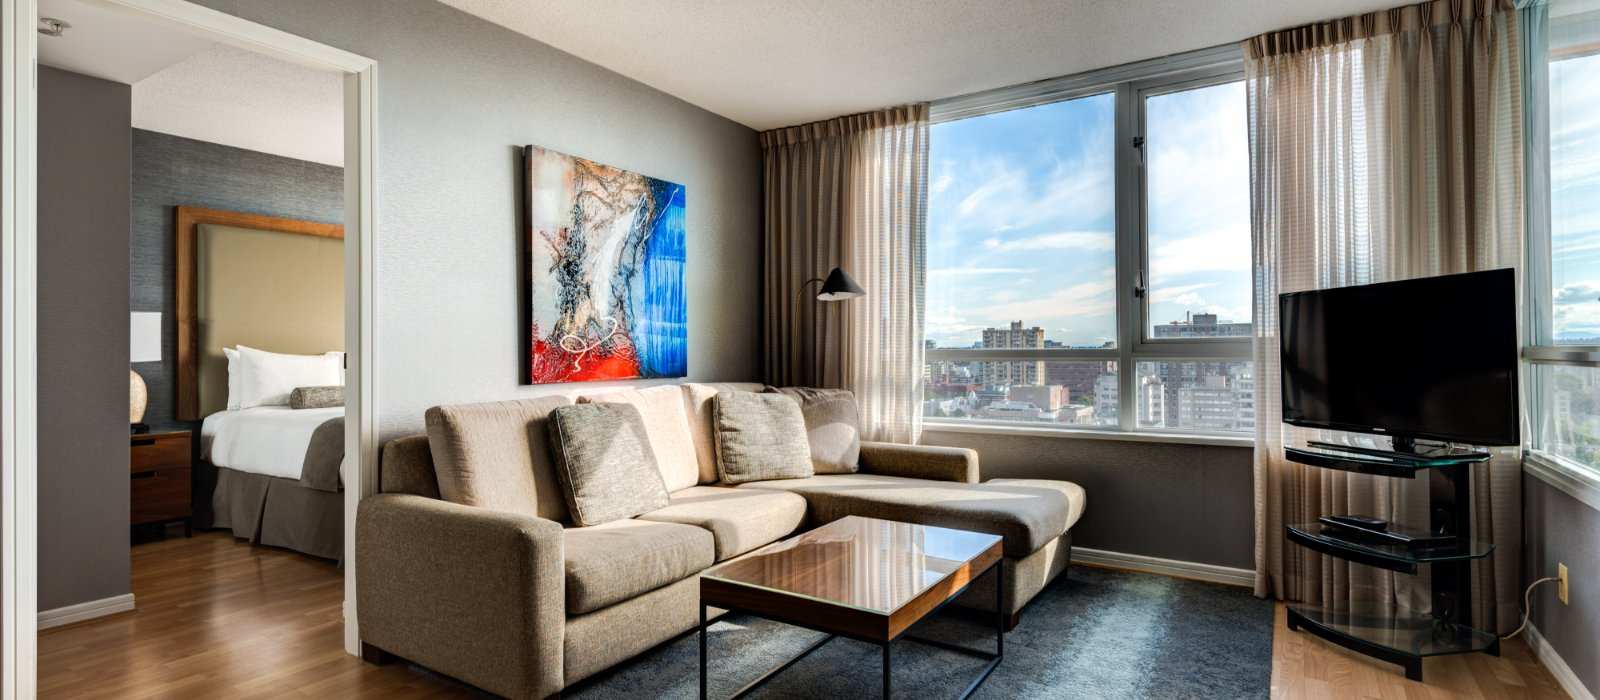 Boutique Hotel Suites In Vancouver Downtown Carmana Plaza